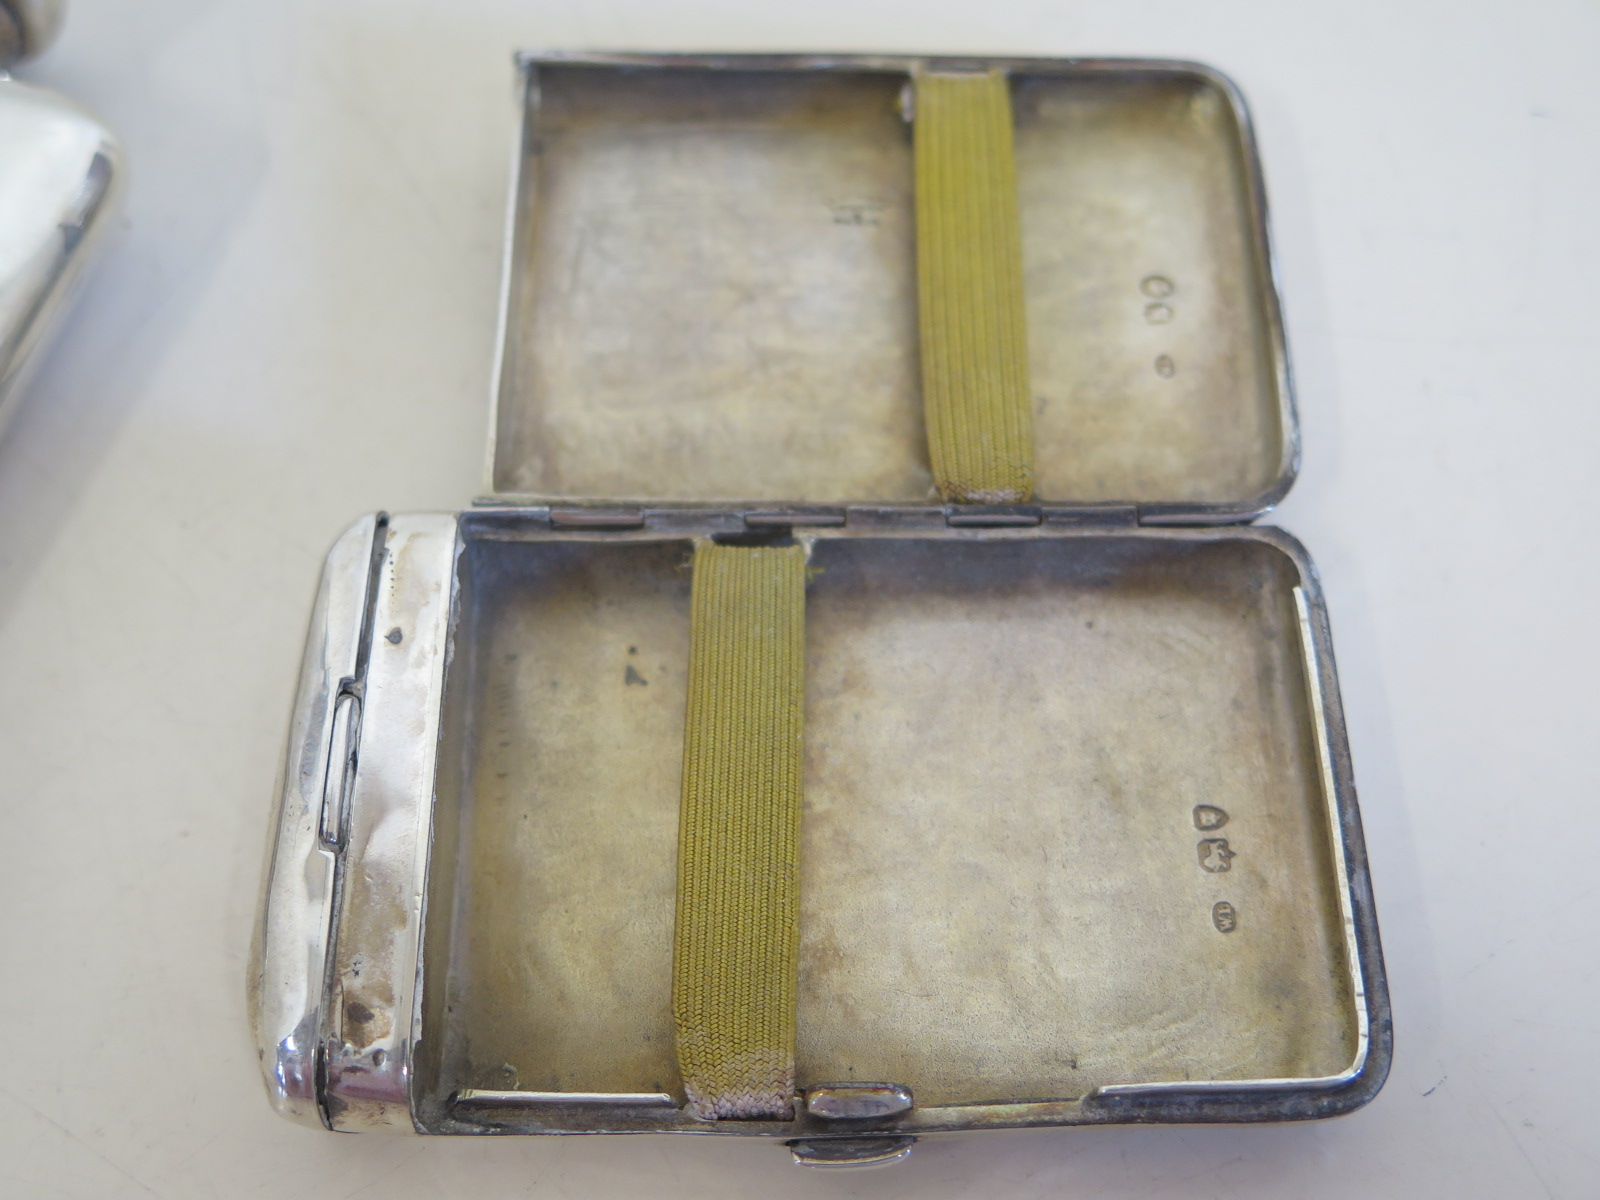 Lot 570 - A Victorian cigarette case and silver hip flask, approx 4.9 troy oz, both with small dents and usage